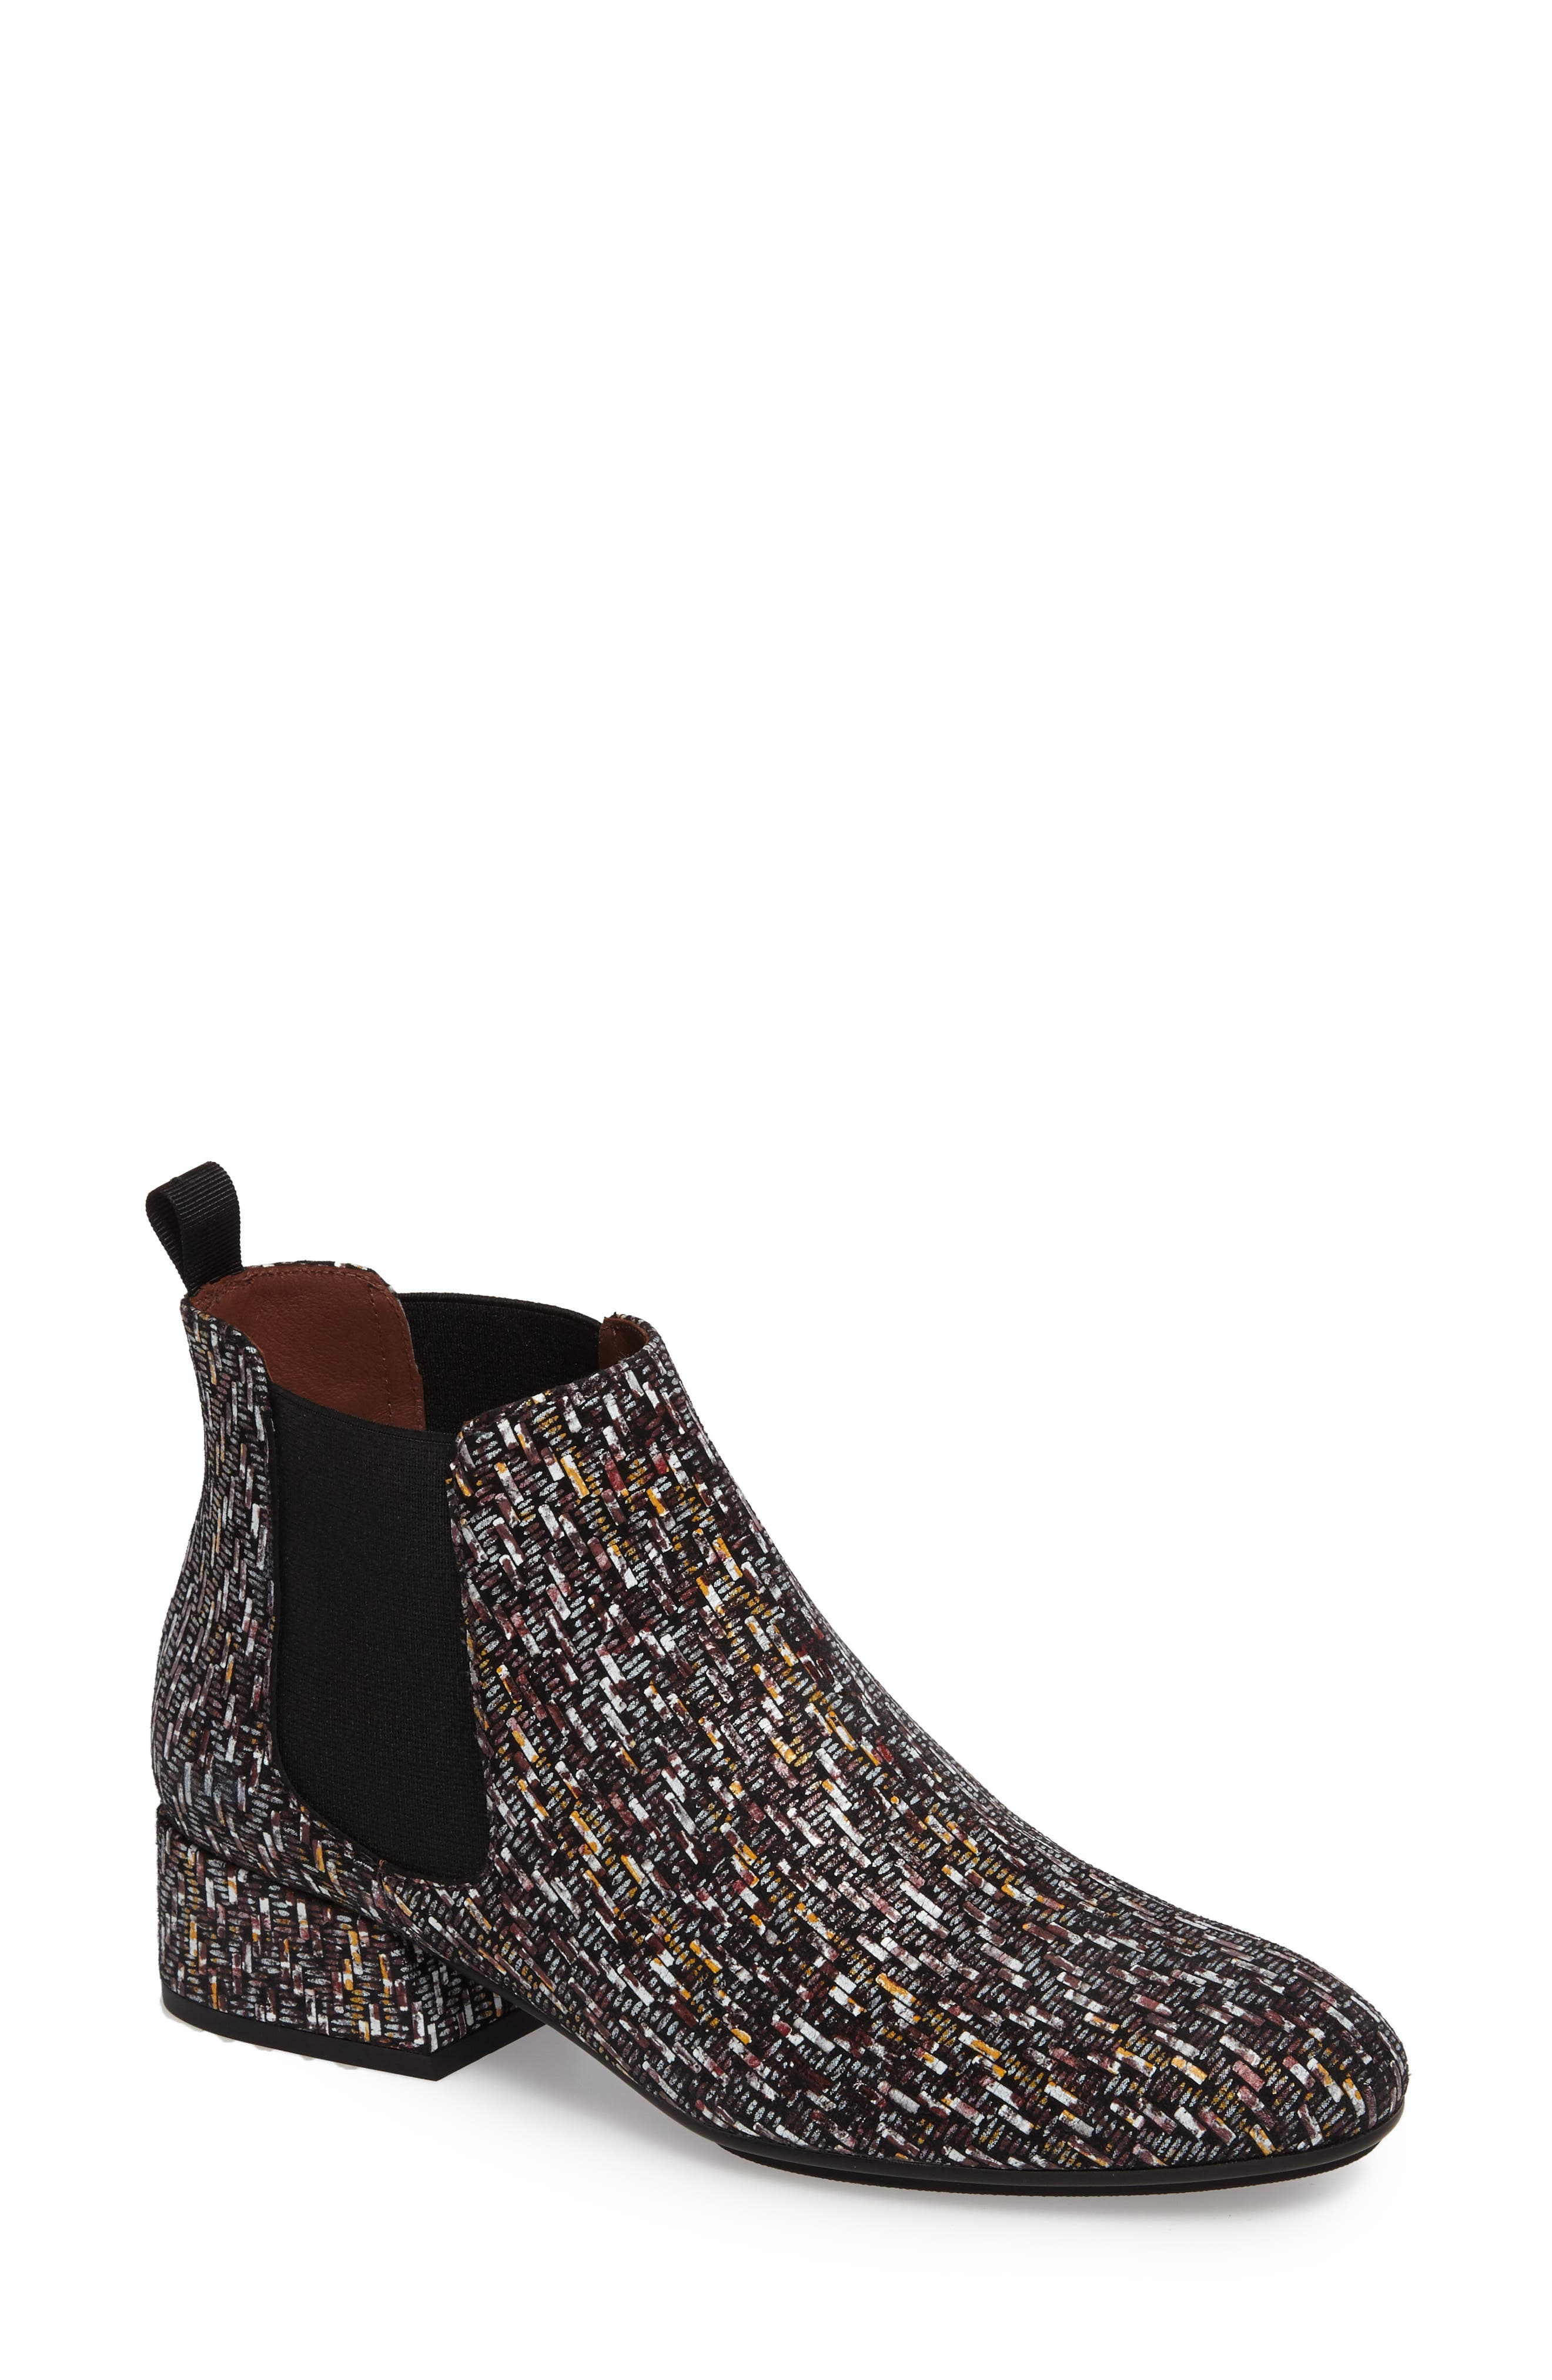 Ellys Patterned Chelsea Bootie,                         Main,                         color, Bordo Leather